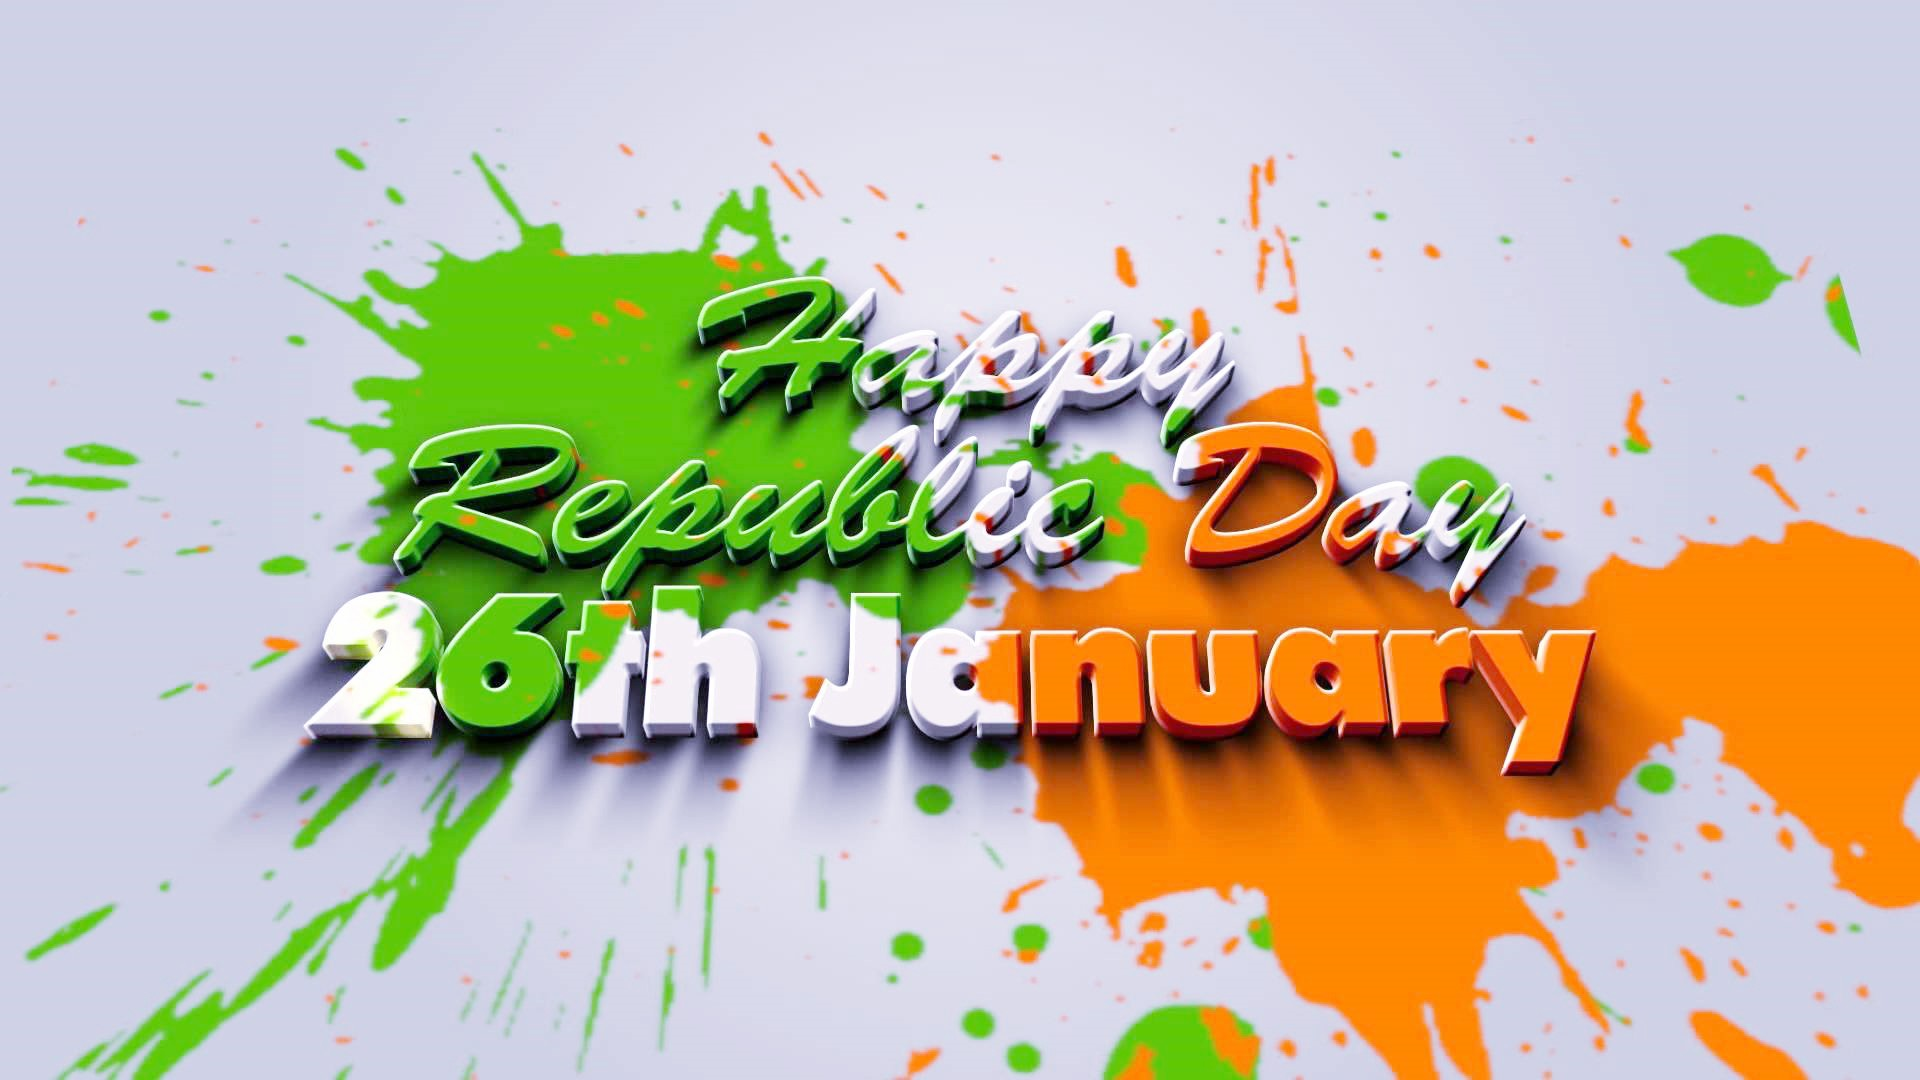 Happy Republic Day Images Wallpapers Photos Download 2020 HD 1920x1080